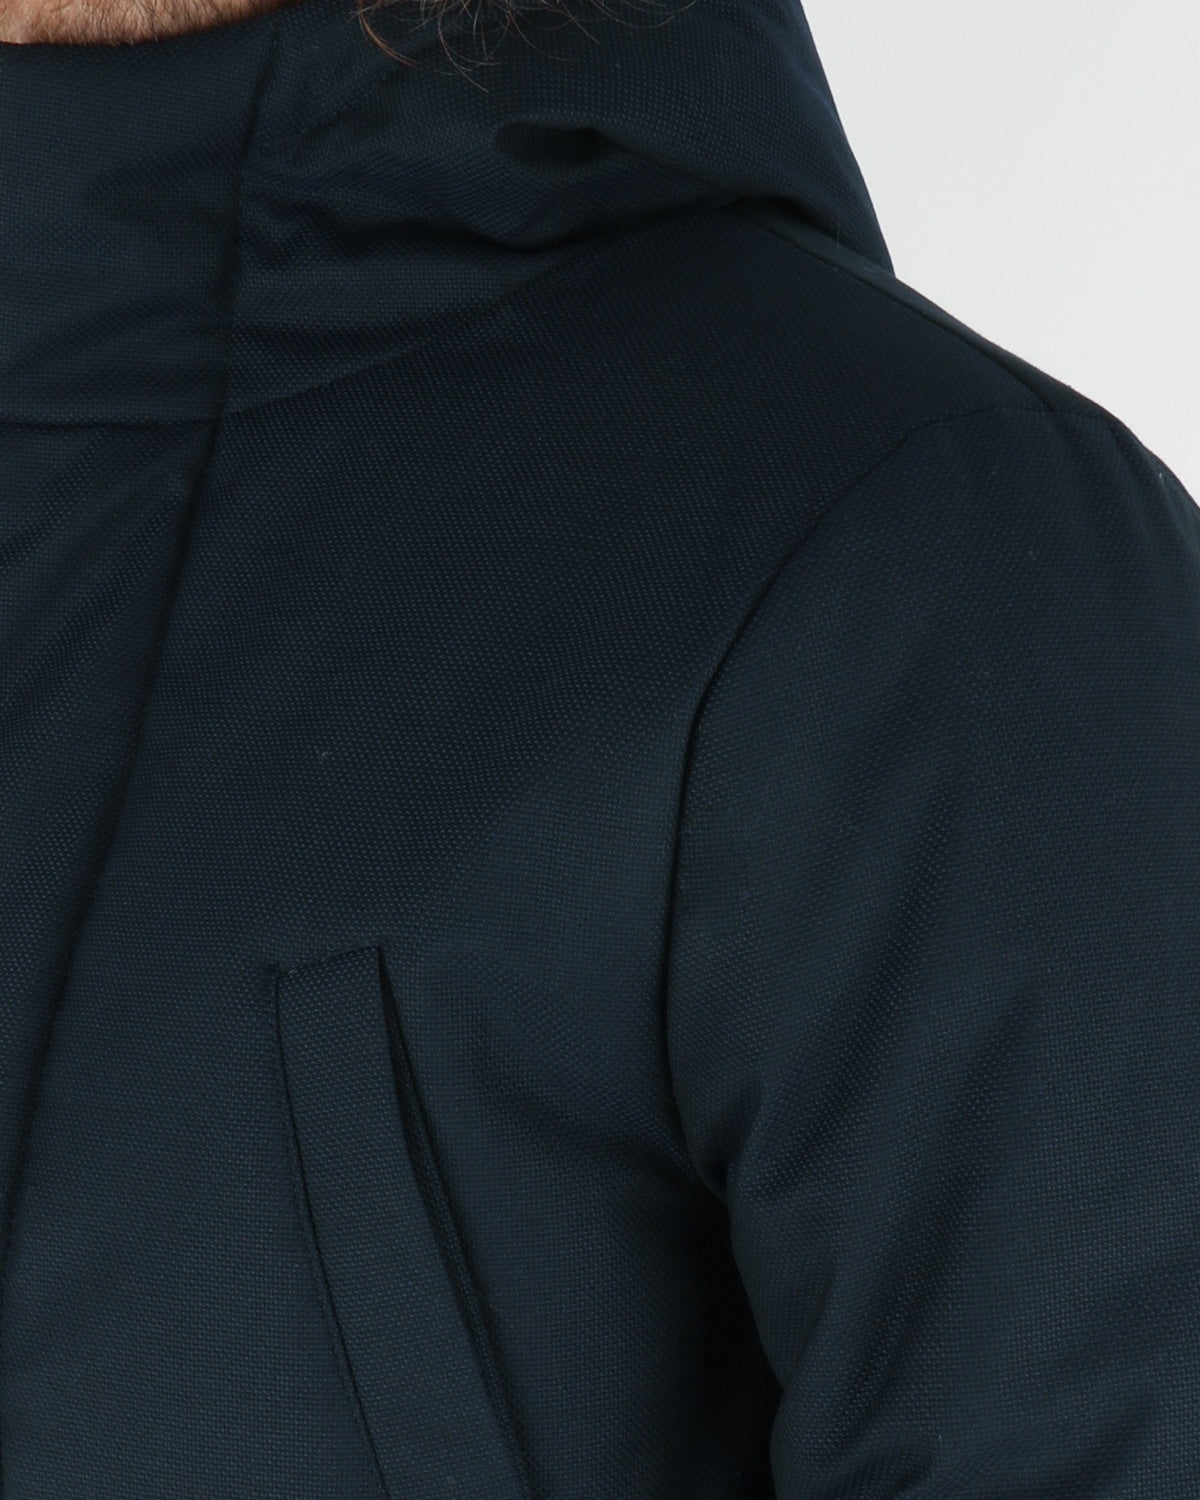 journal clothing_million coat_navy_view_4_5